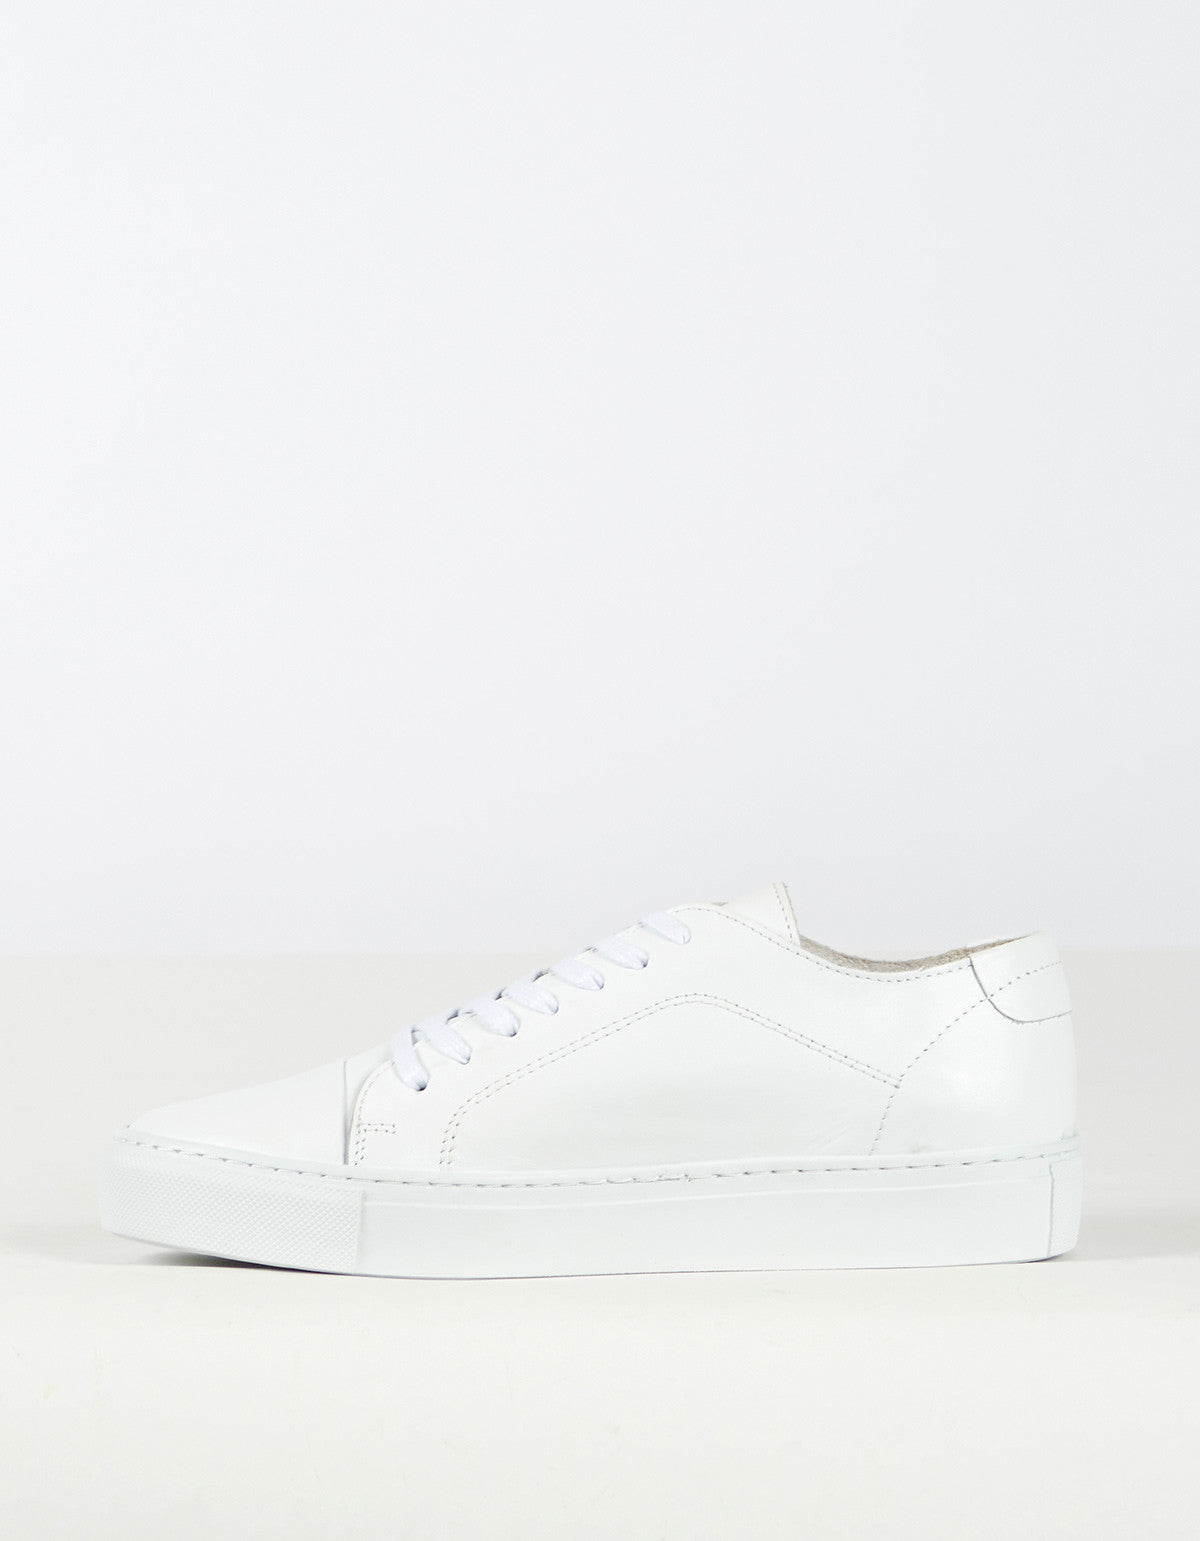 Garment Project Classic Lace Sneaker White - Still Life - 2